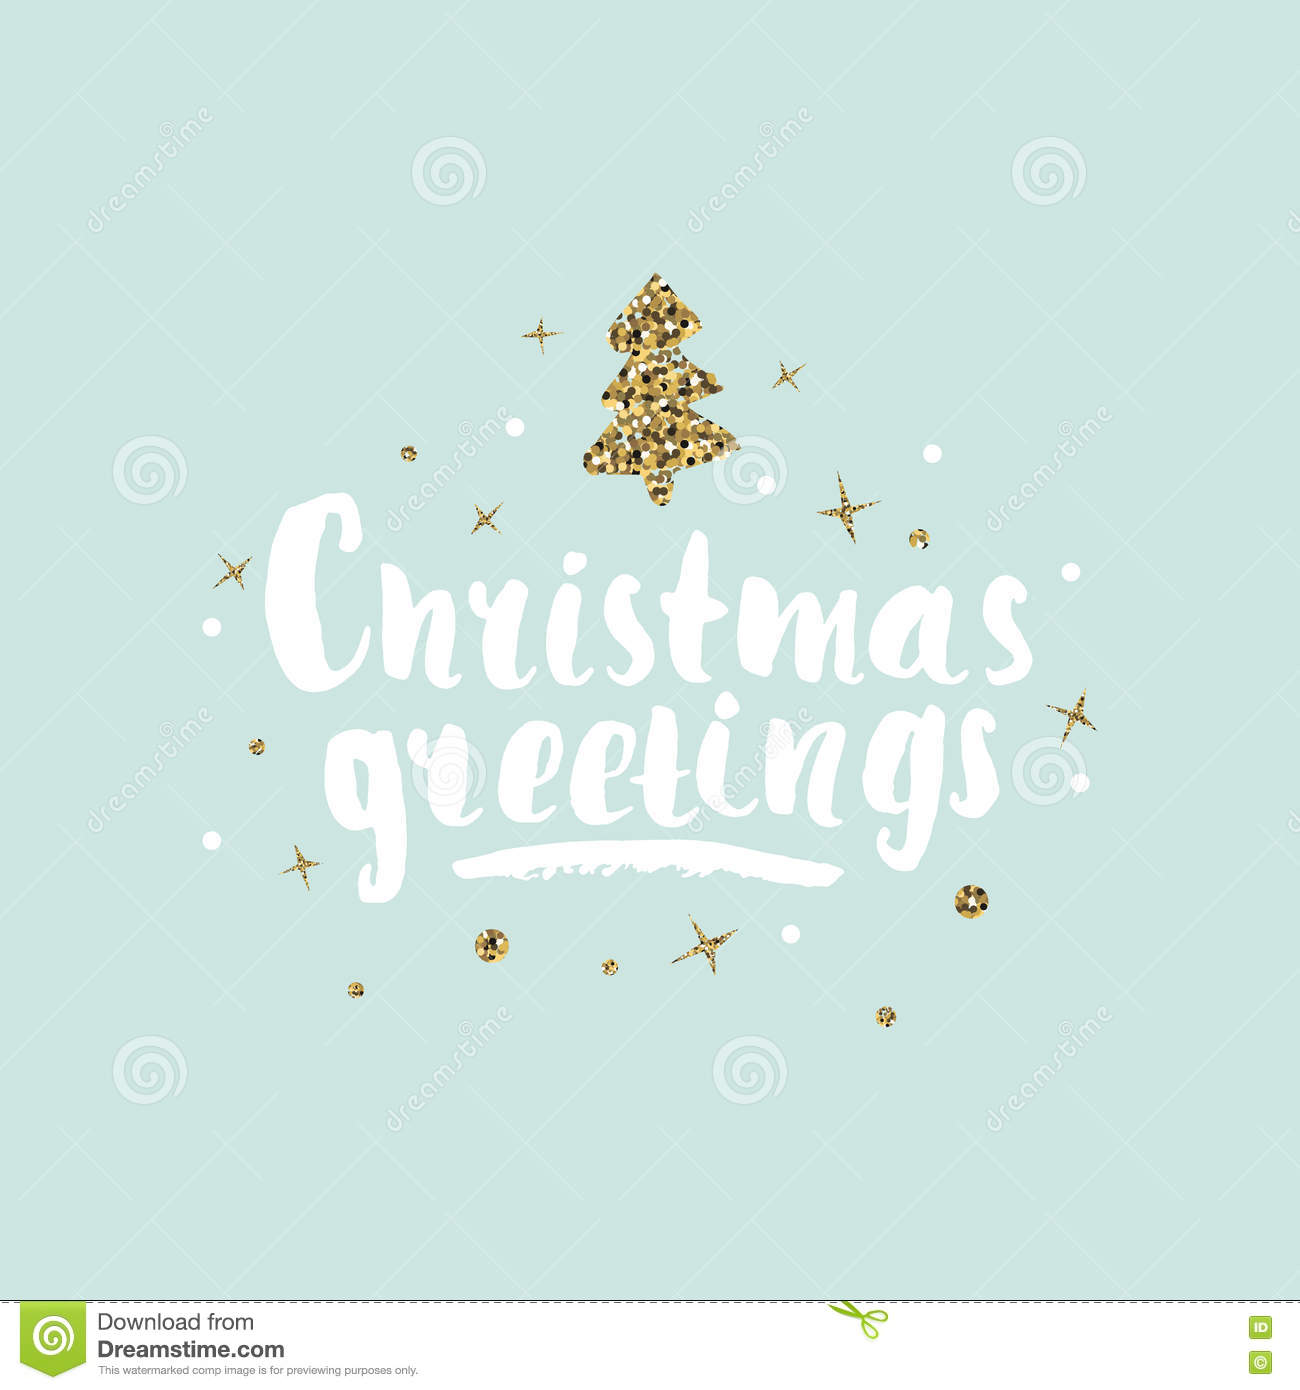 Christmas Greetings Holiday Unique Handwritten Lettering